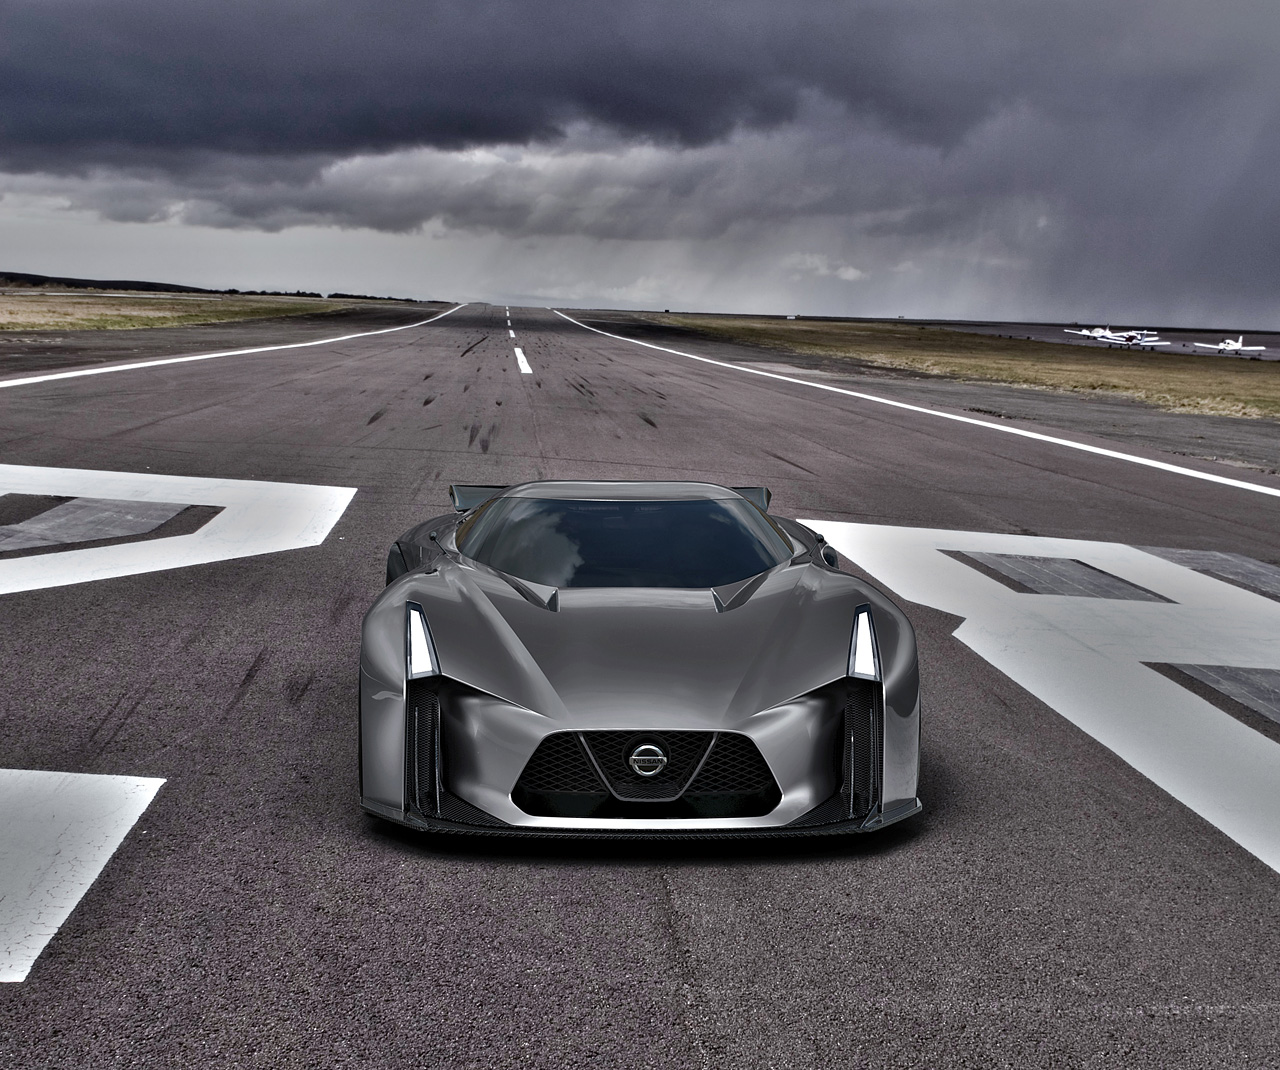 Introducing The NISSAN CONCEPT 2020 Vision Gran Turismo